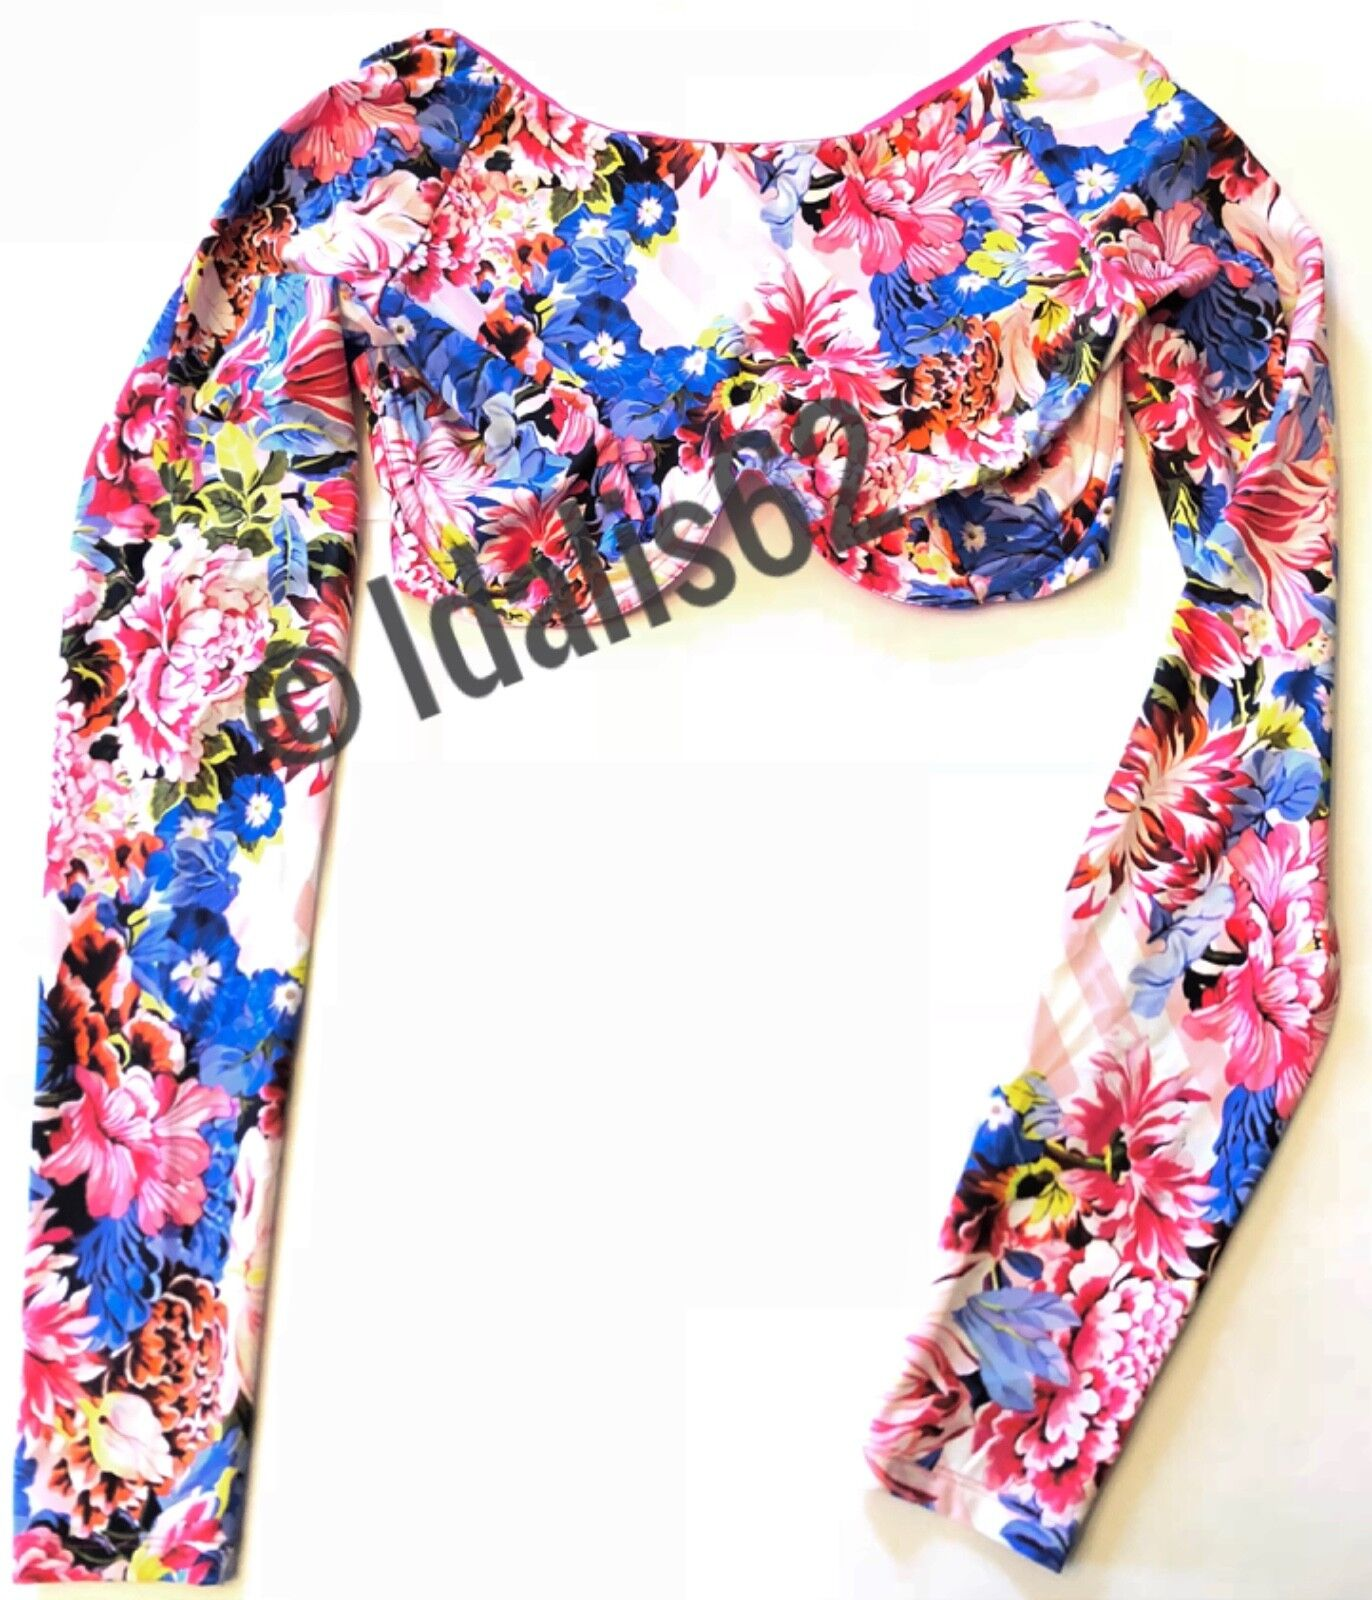 NWT Victoria's Secret x Mary Katrantzou SOLD OUT Floral Bra Crop Top S